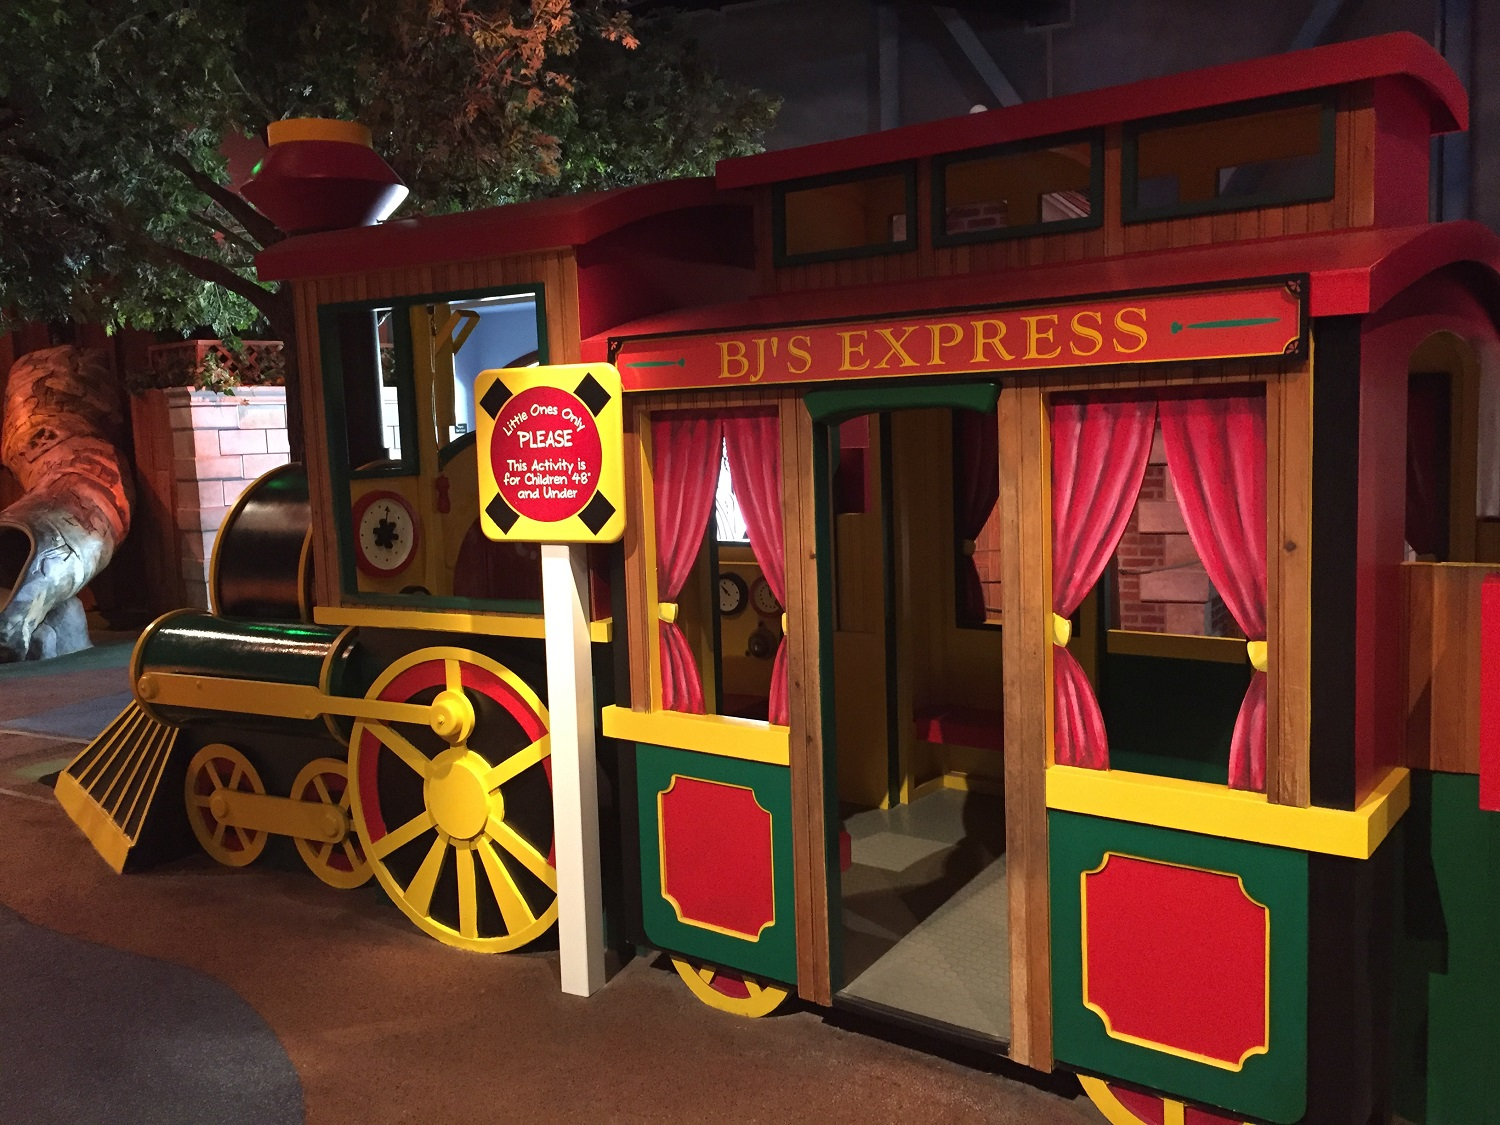 BJ's Express is located in Barney's Backyard, an indoor play area for small children.